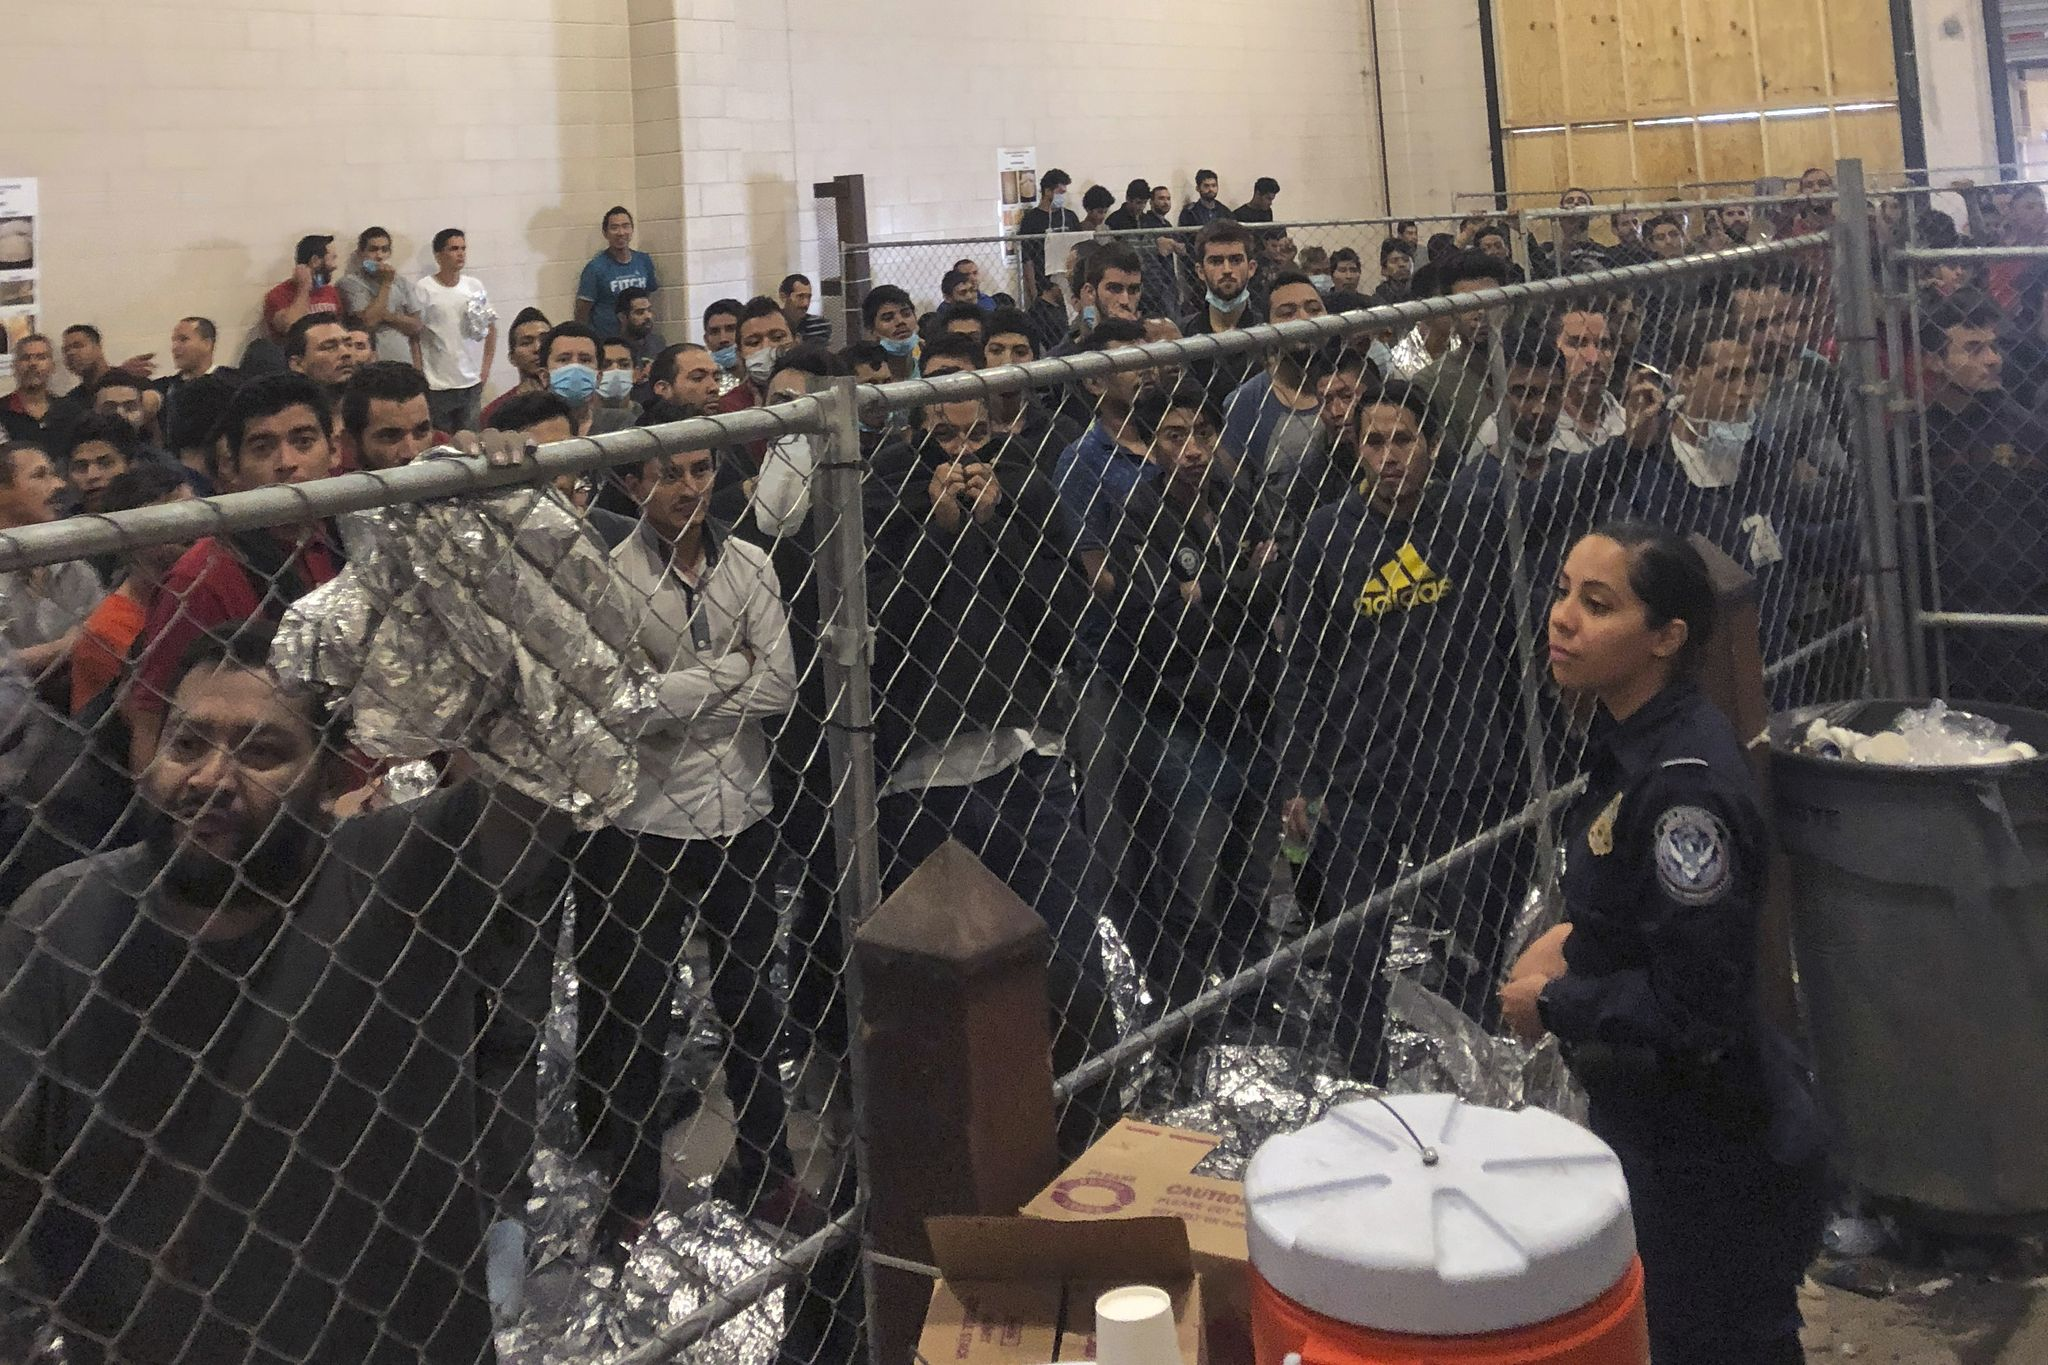 Why not control the crowd illegally entering America?